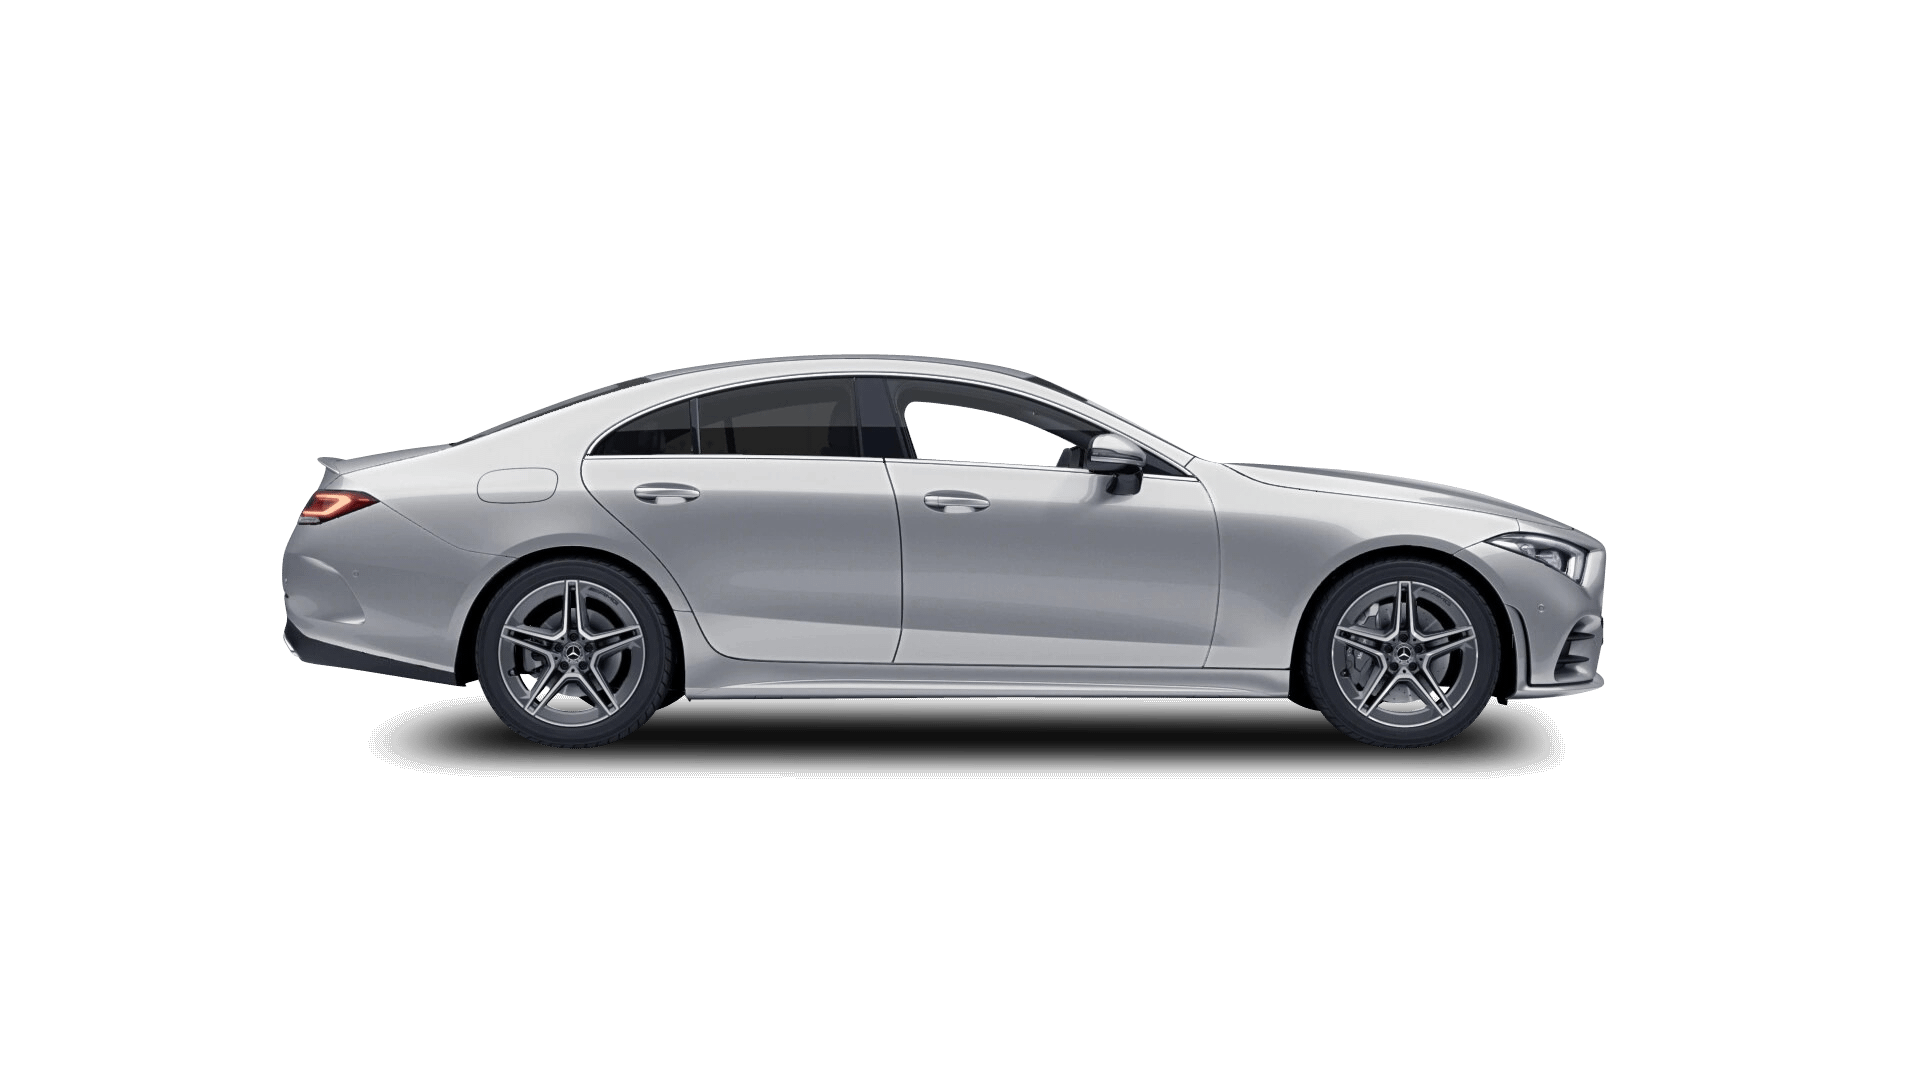 https://bluesky-cogcms.cdn.imgeng.in/media/35329/cls-coupe-amg-line.png